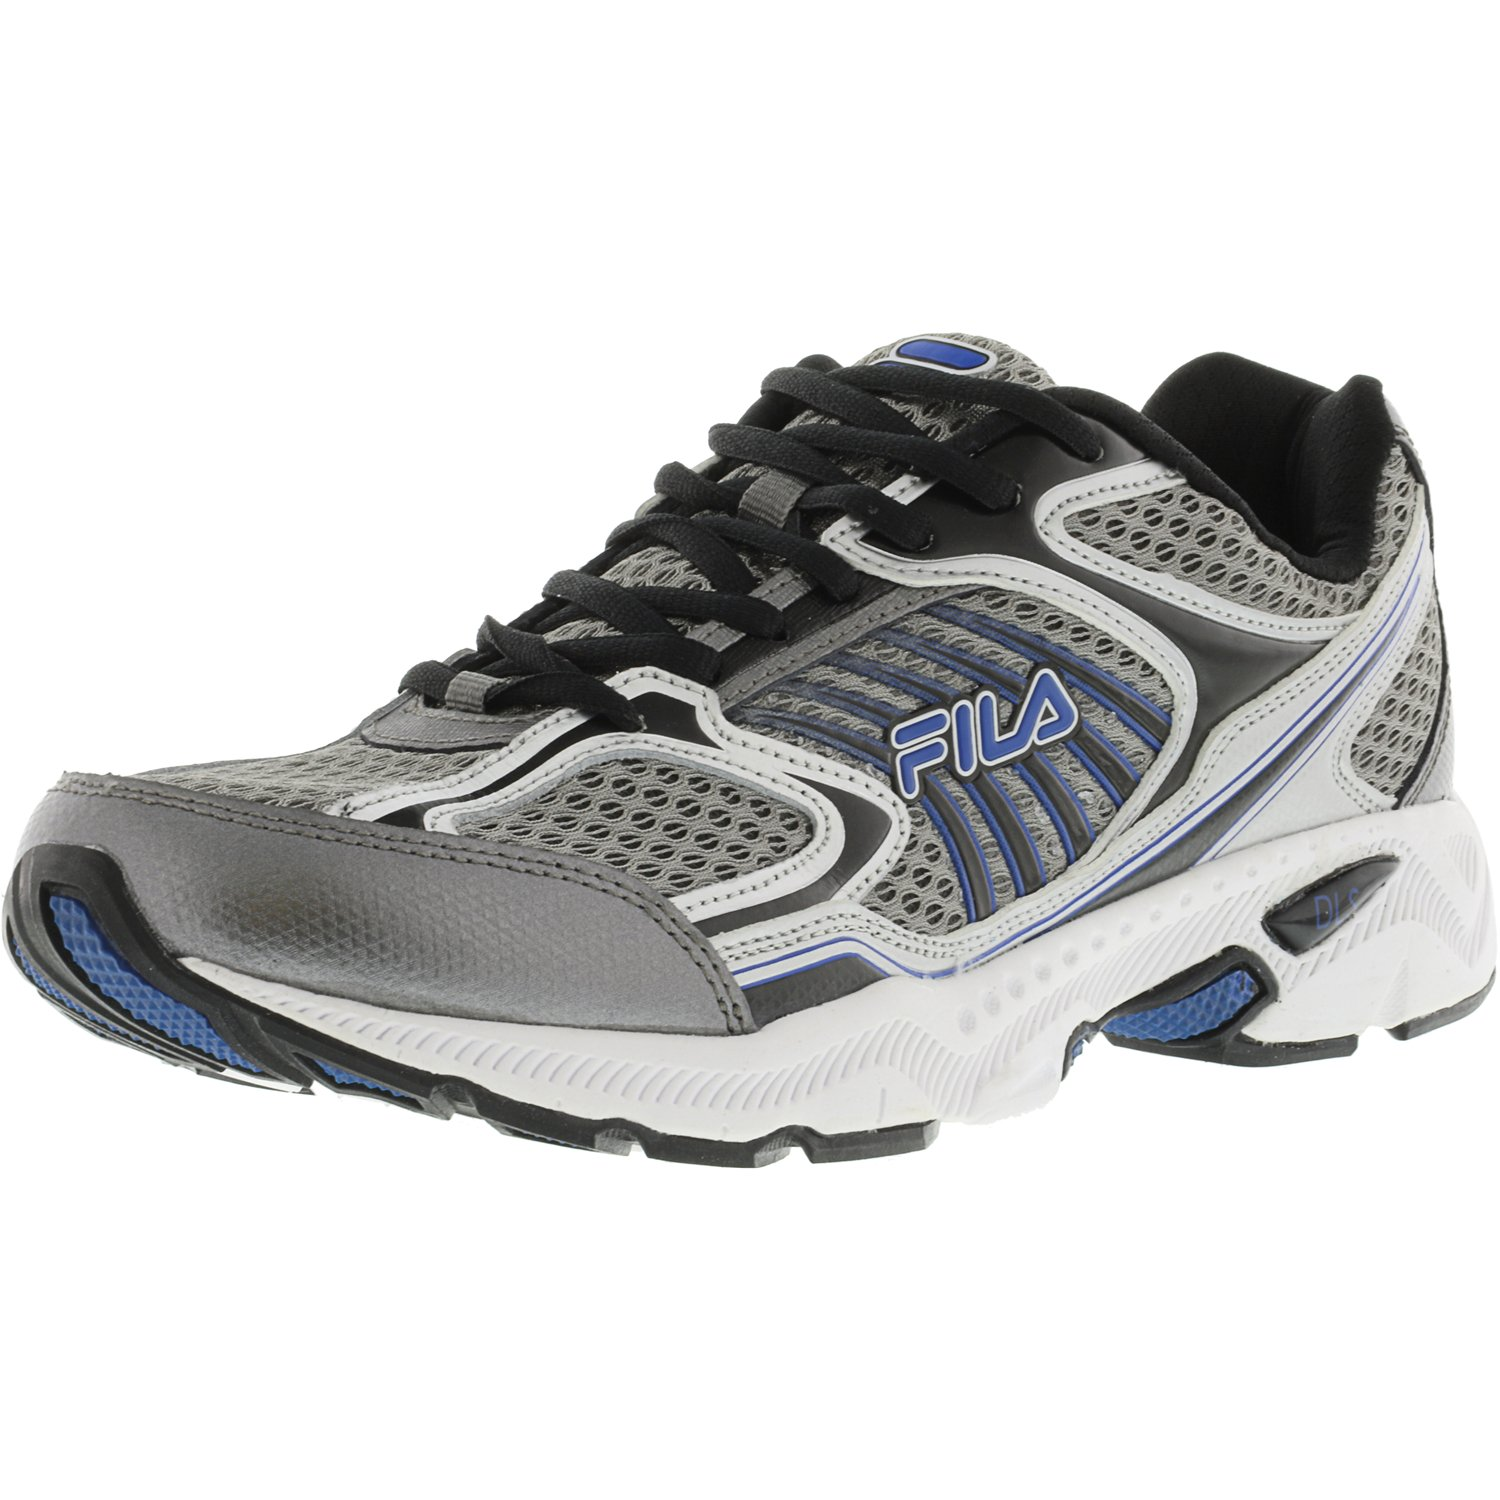 Fila Men's Memory Inspell Dark Silver / Black Prince Blue Ankle-High Running Shoe - 11.5M